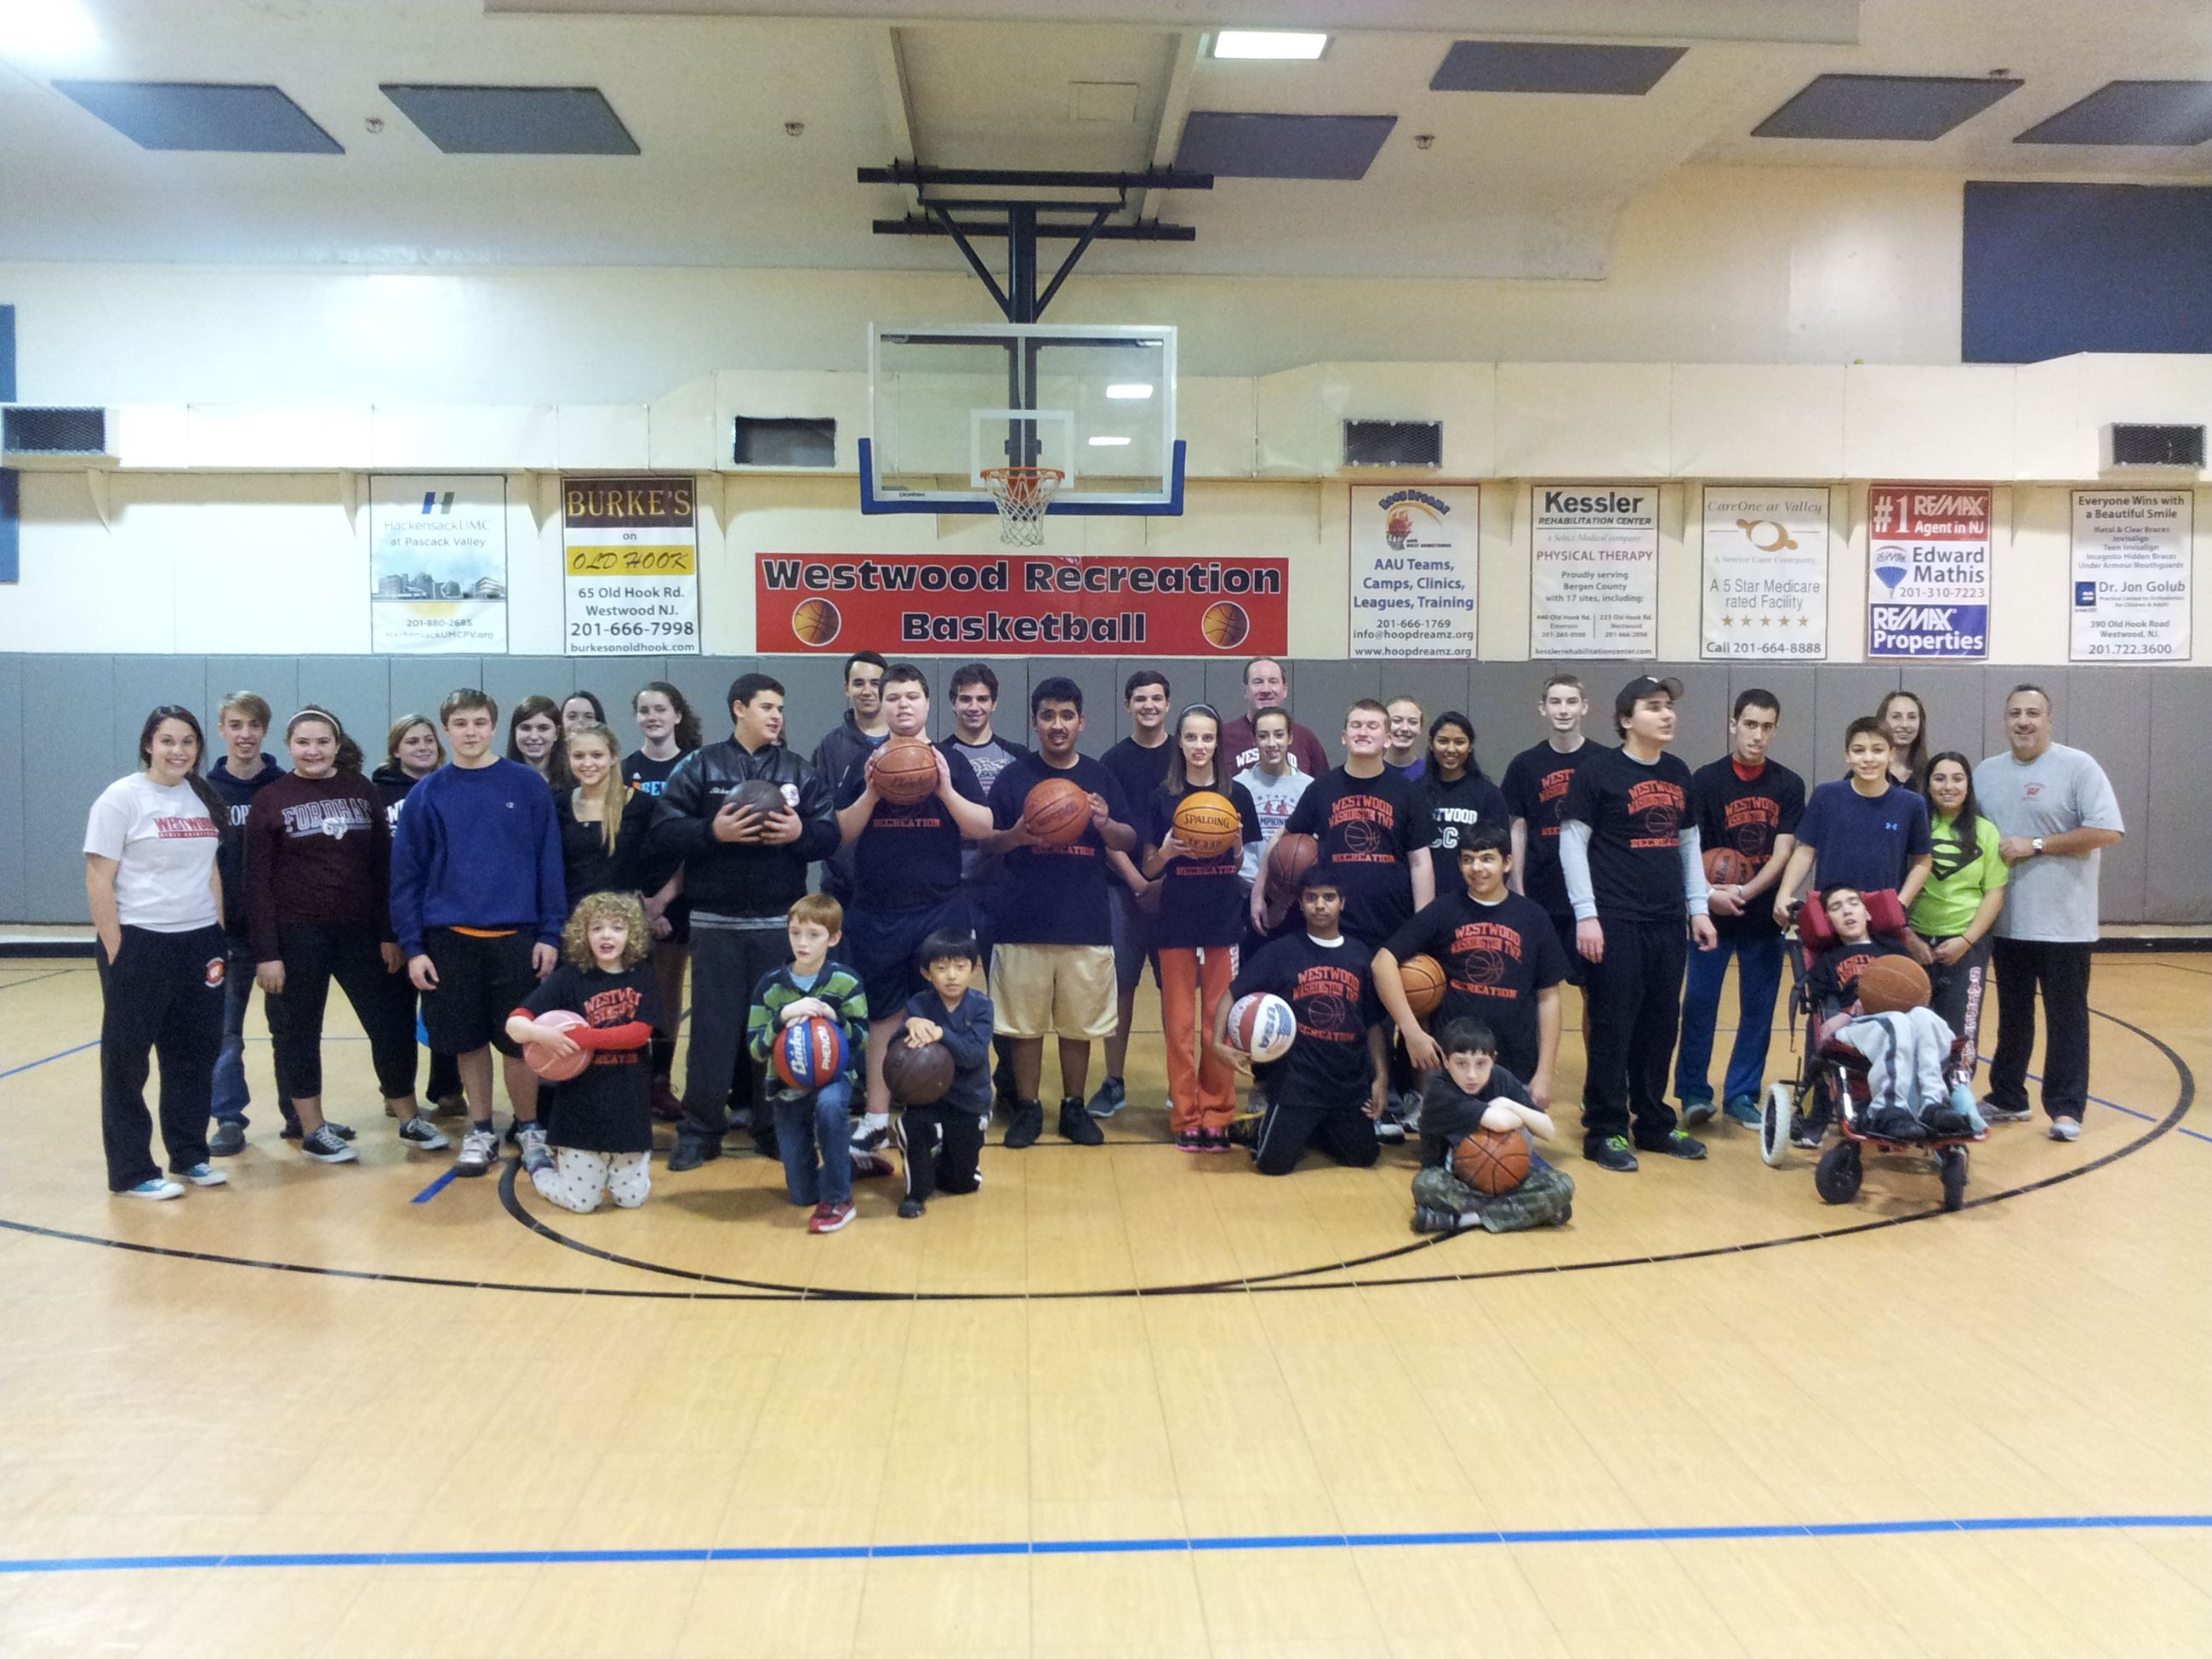 Special Needs Basketball Group